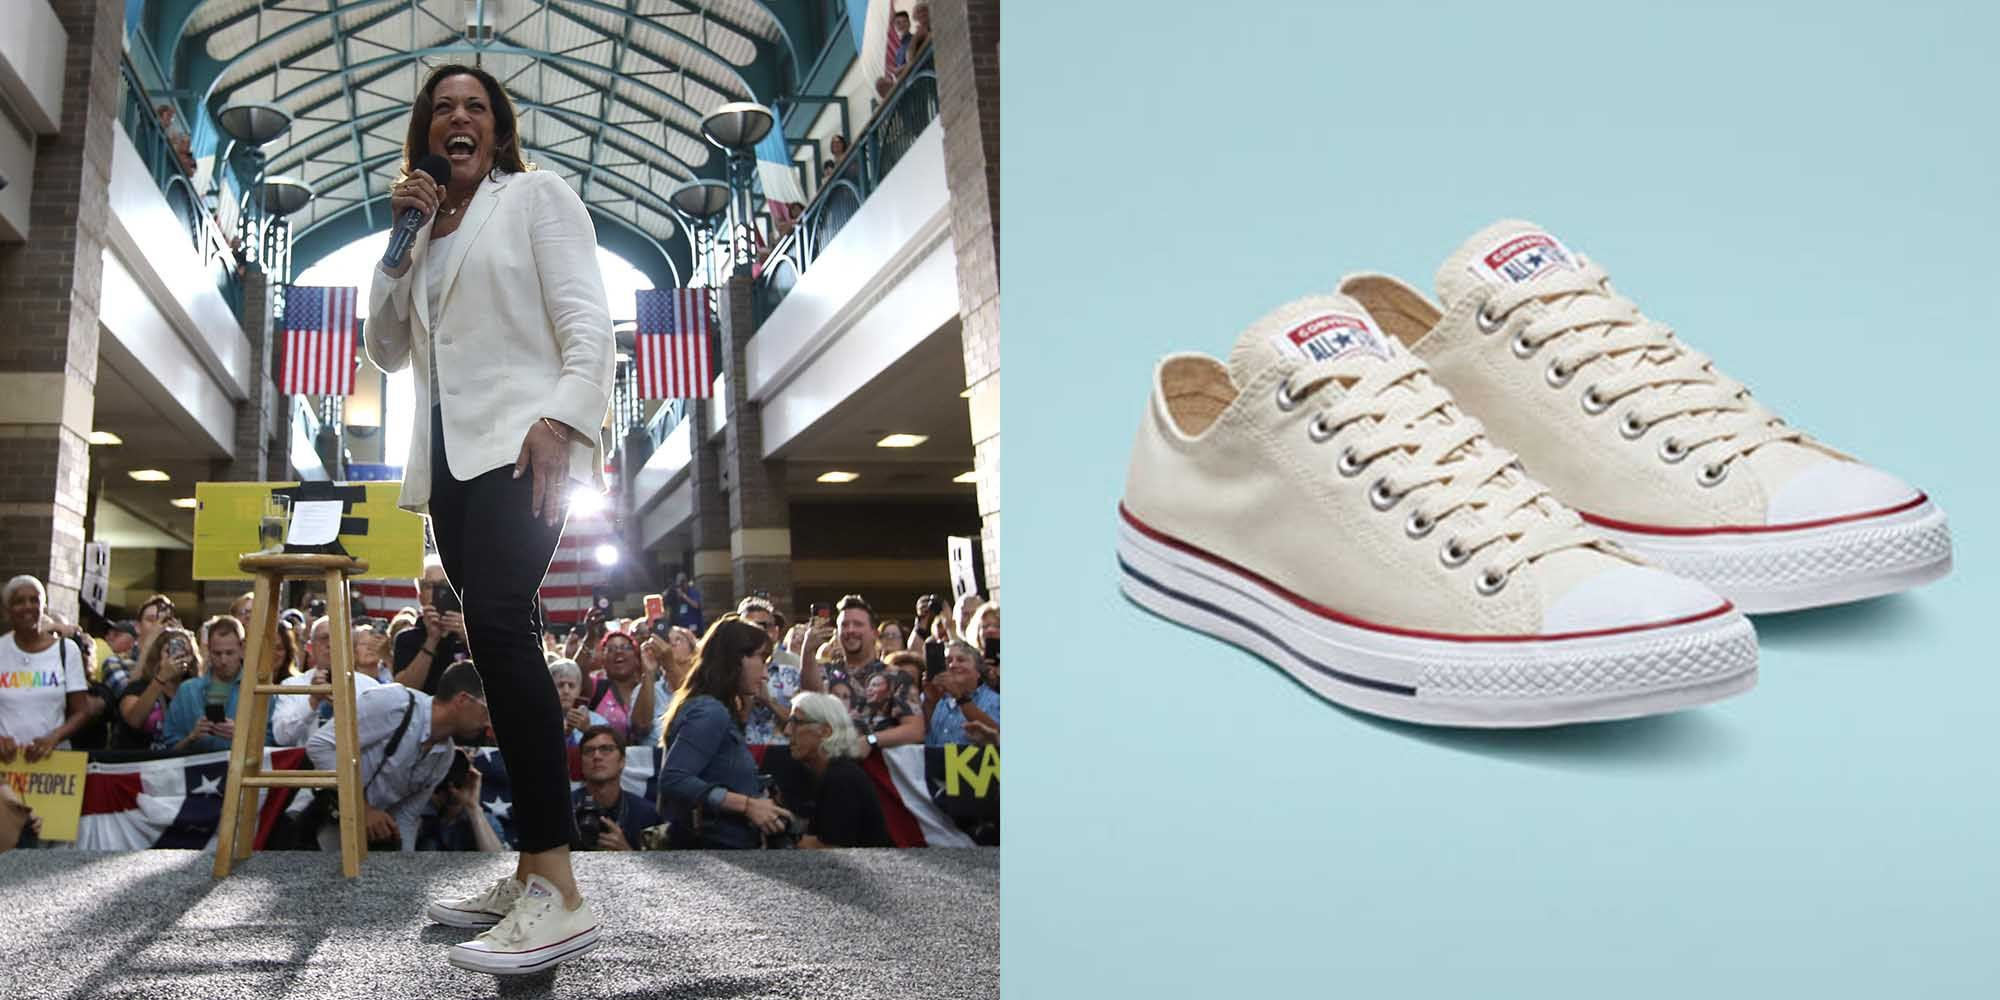 atlántico mineral Ceder el paso  Kamala Harris Loves Converse Sneakers—Here's Why That Matters